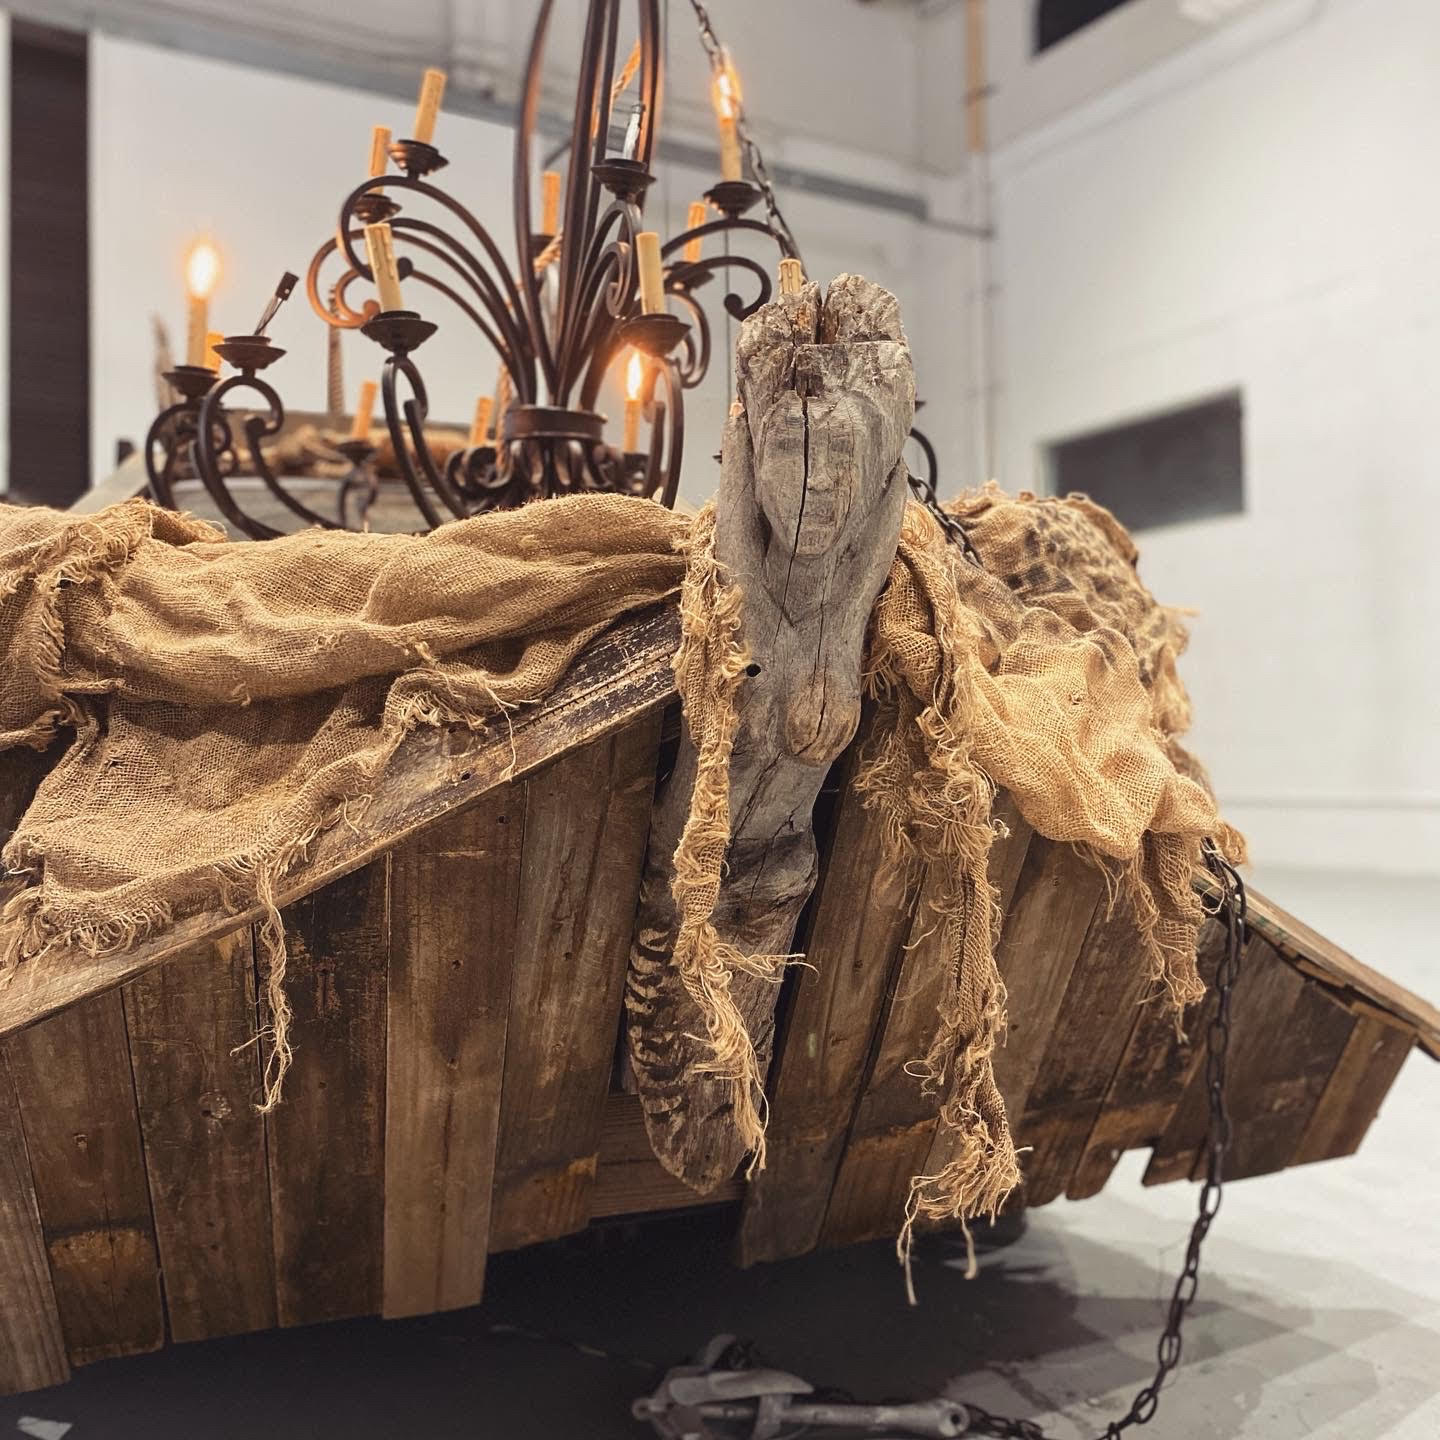 A photo of a wooden art piece with a chandelier over it, dropped in burlap cloth and the head of a woman figure on the side.